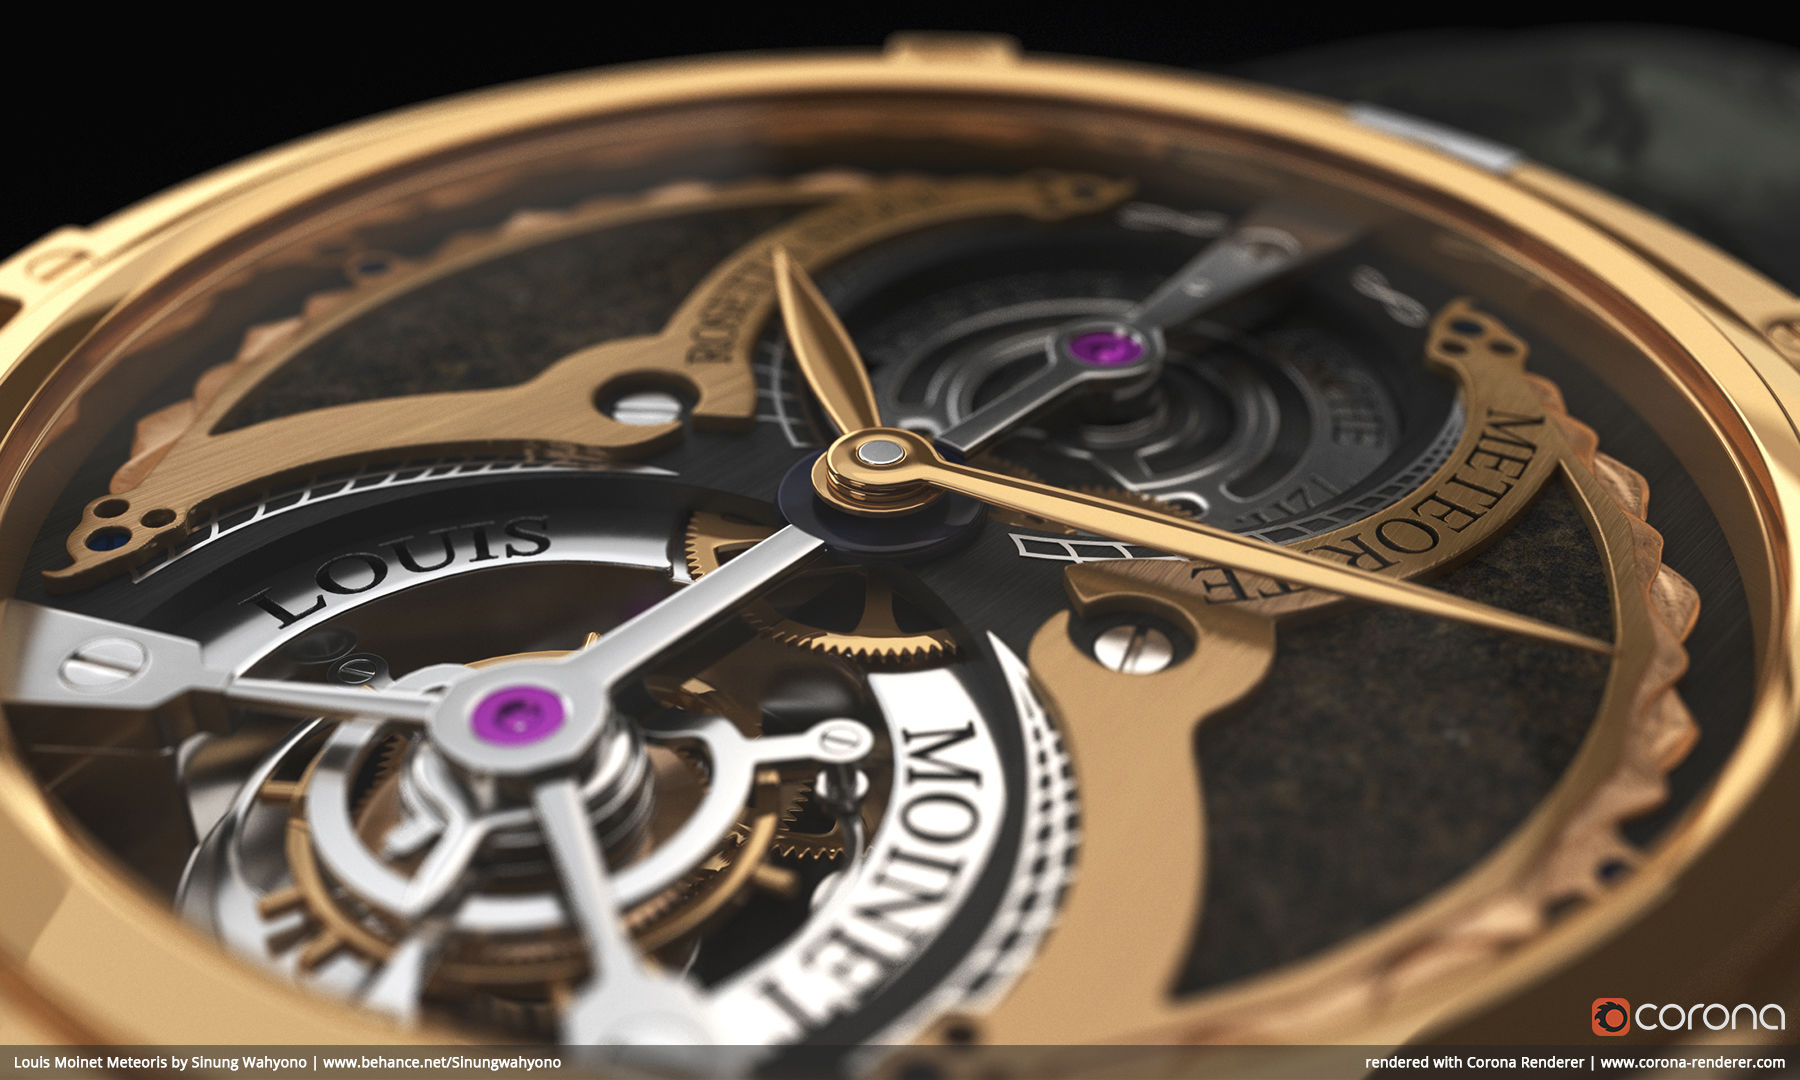 Louis Moinet Meteoris 02 by Sinung Wahyono